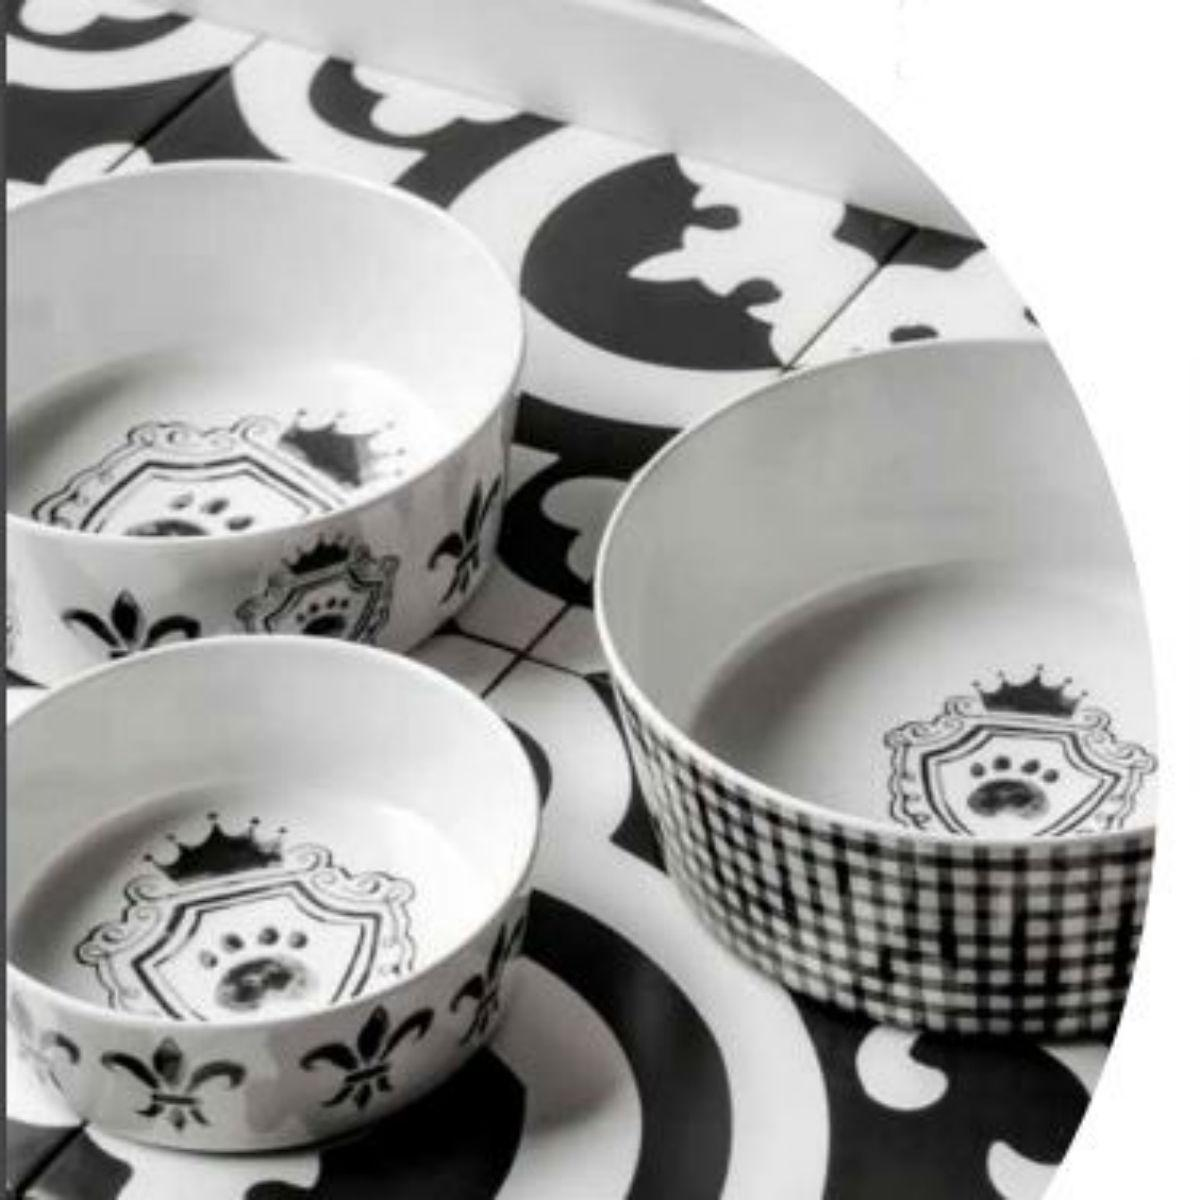 Couture Pet Bowl by TarHong